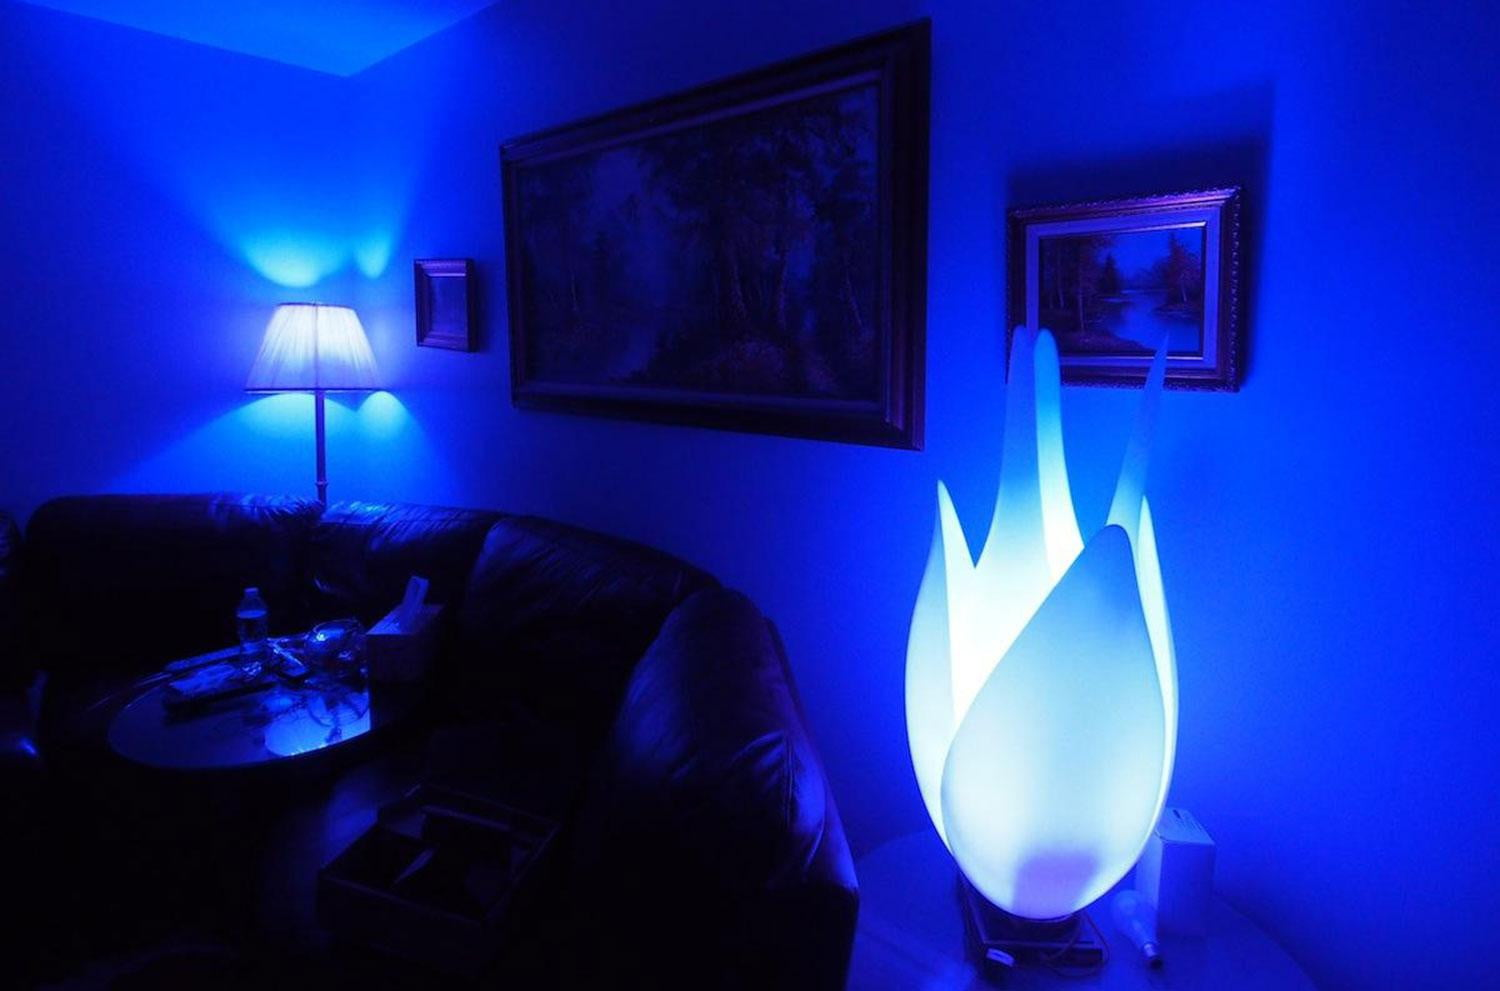 Philips Colour Lamp Philips Hue Review Digital Trends